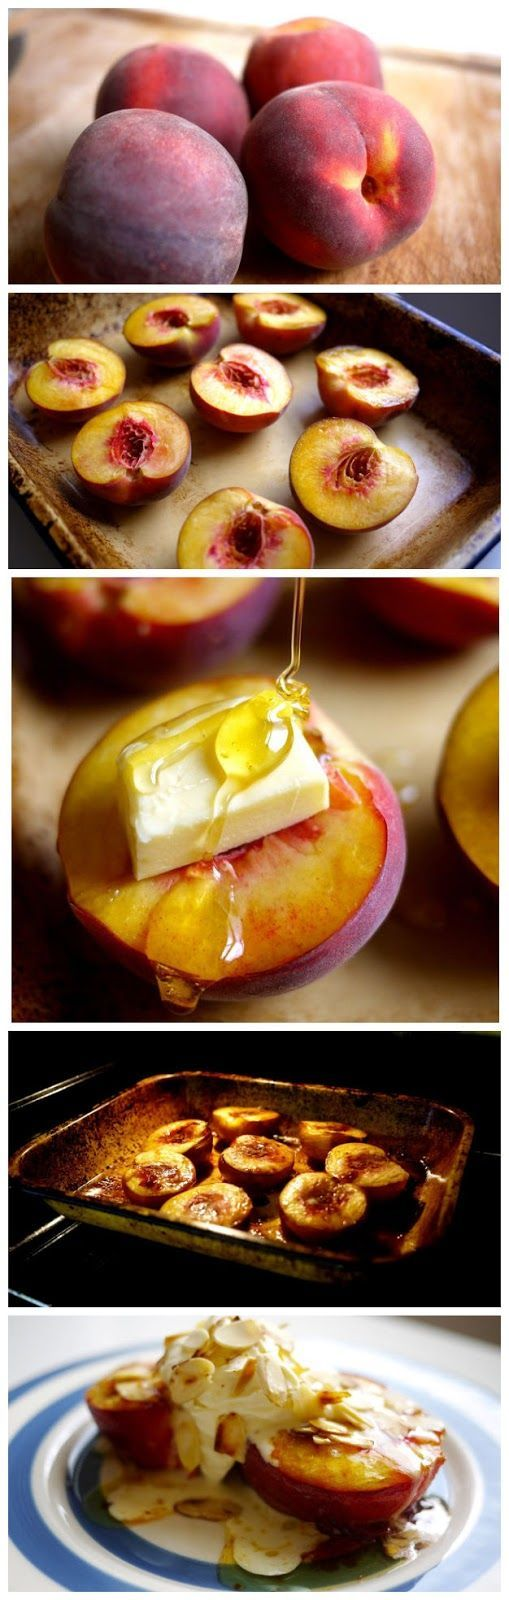 Honey roast peaches. So good, and really easy. Just chop em in half and stick em in the oven.